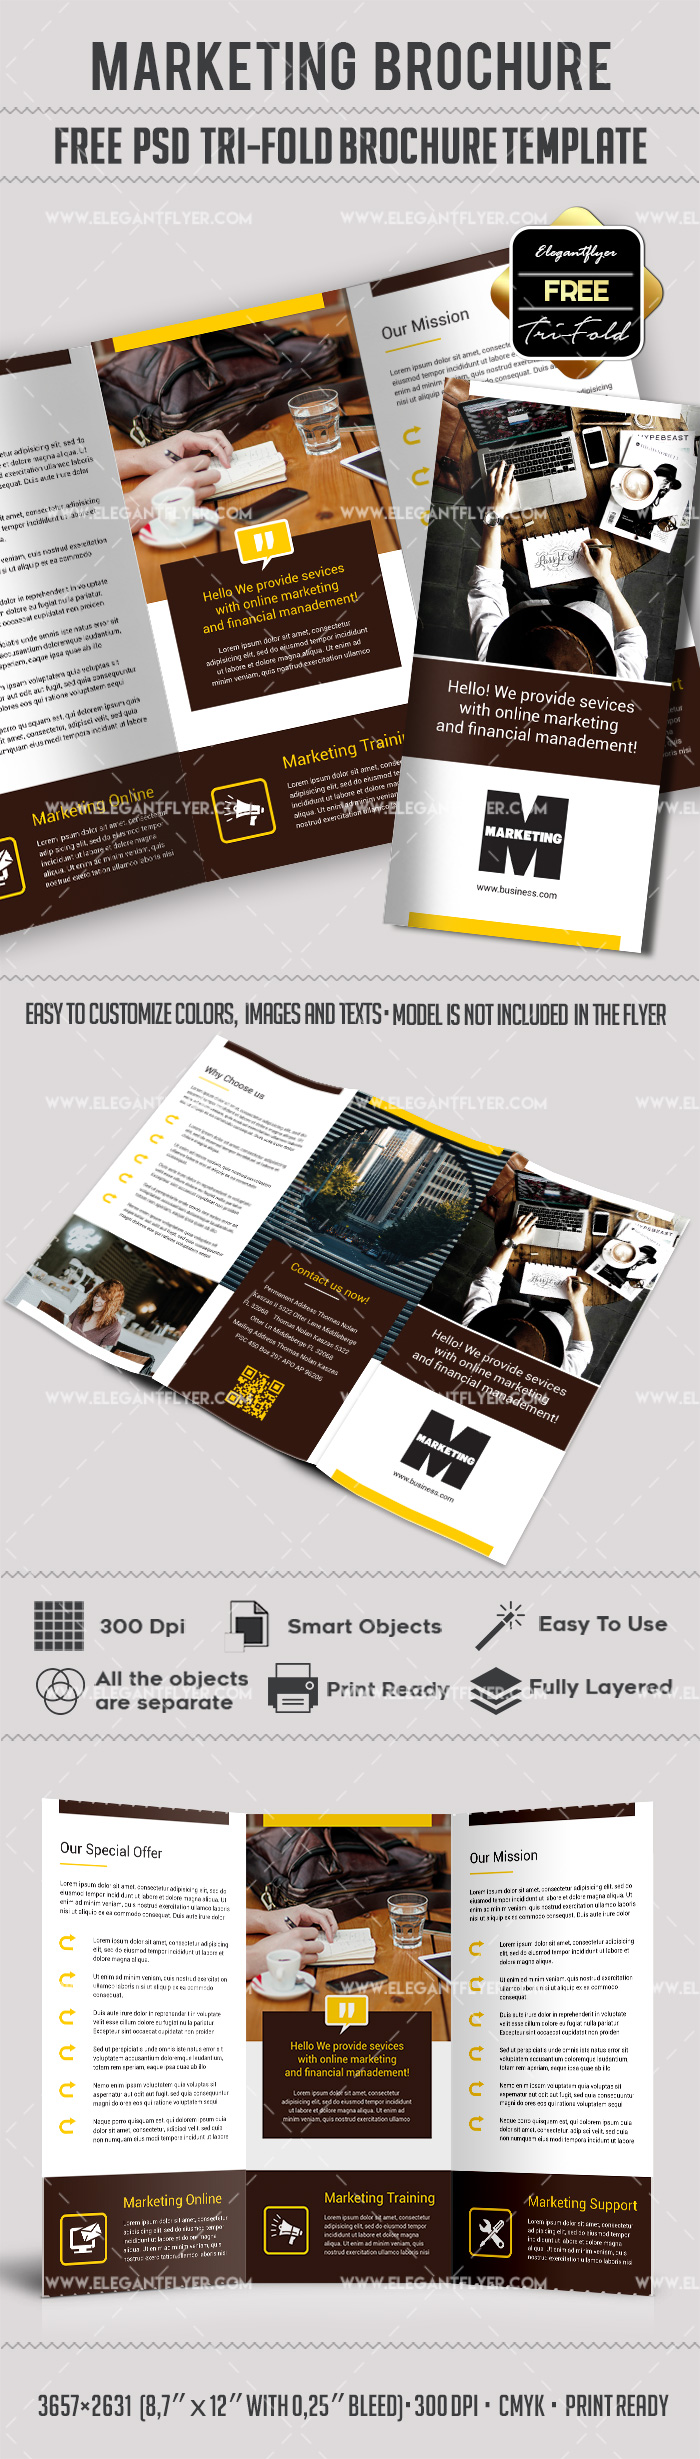 Marketing free tri fold psd brochure template by for Brochure free templates